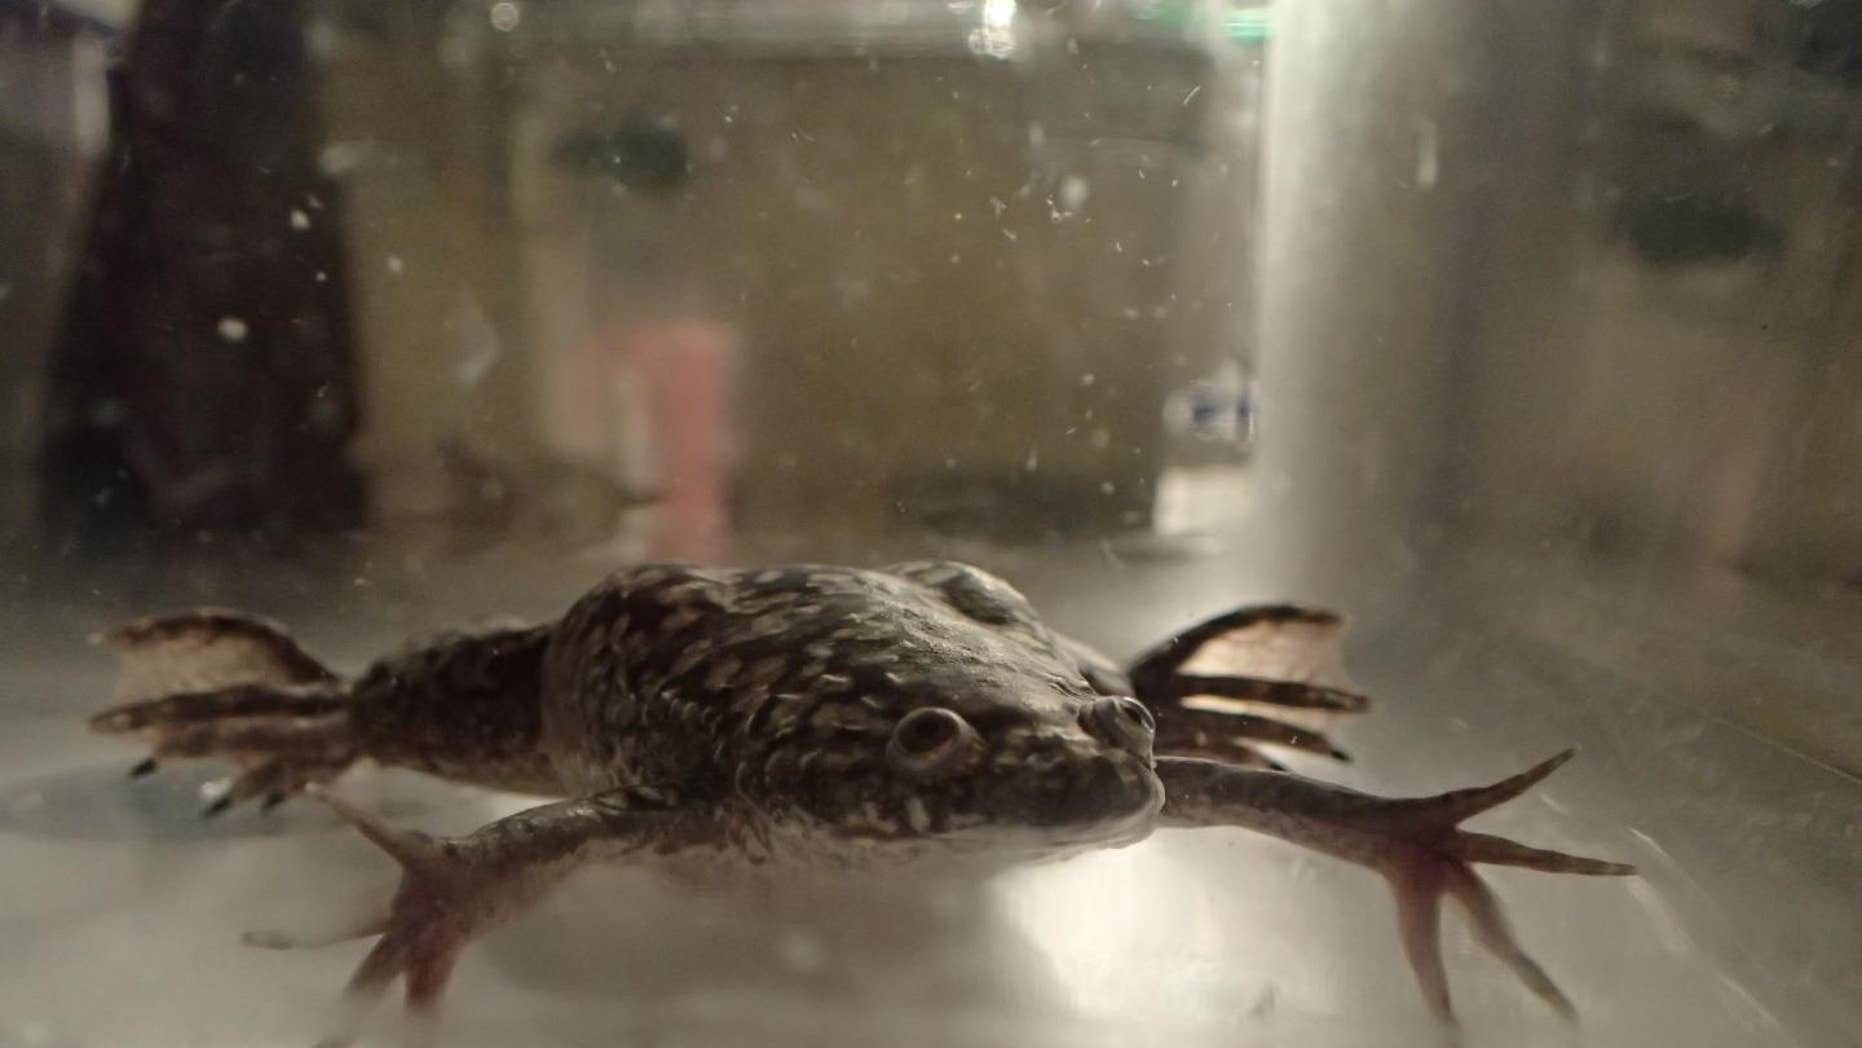 This image shows Xenopus laevis swimming in a tank pre-amputation. (Celia Herrera-Rincon/Tufts University)